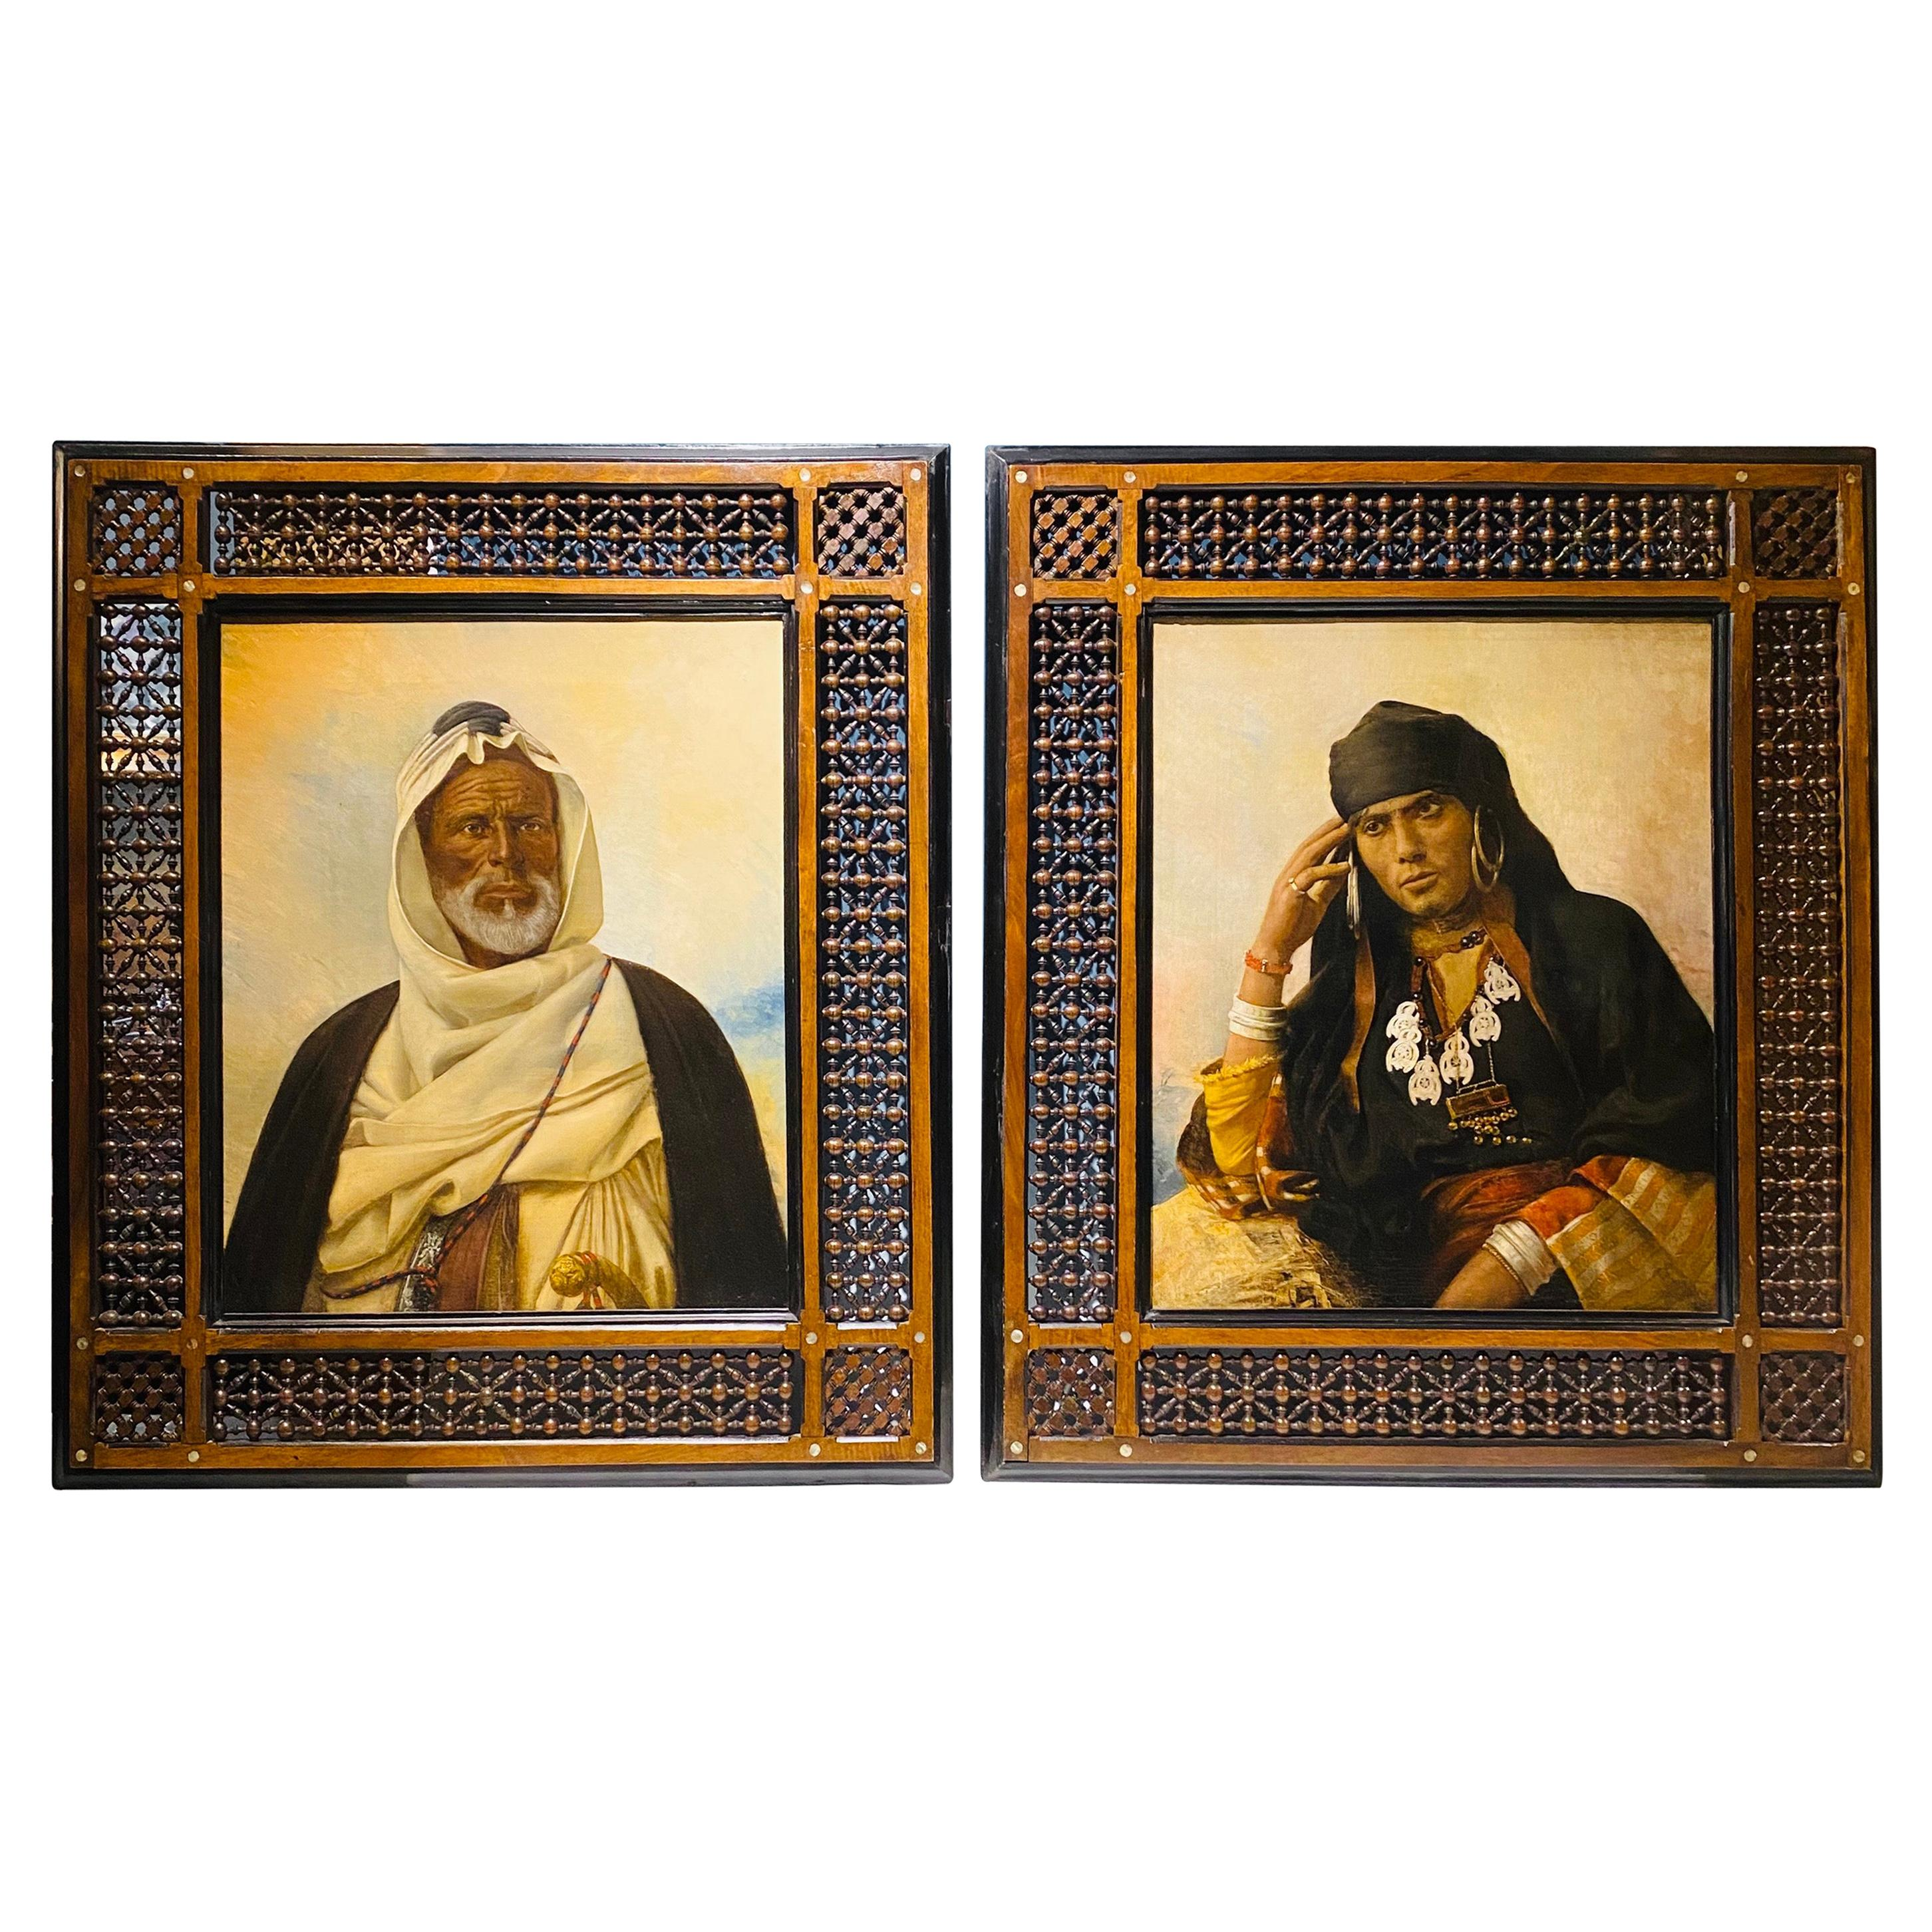 Rare Pair of 19th Century Orientalist Oil/Canvas Paintings in Beaded Frames